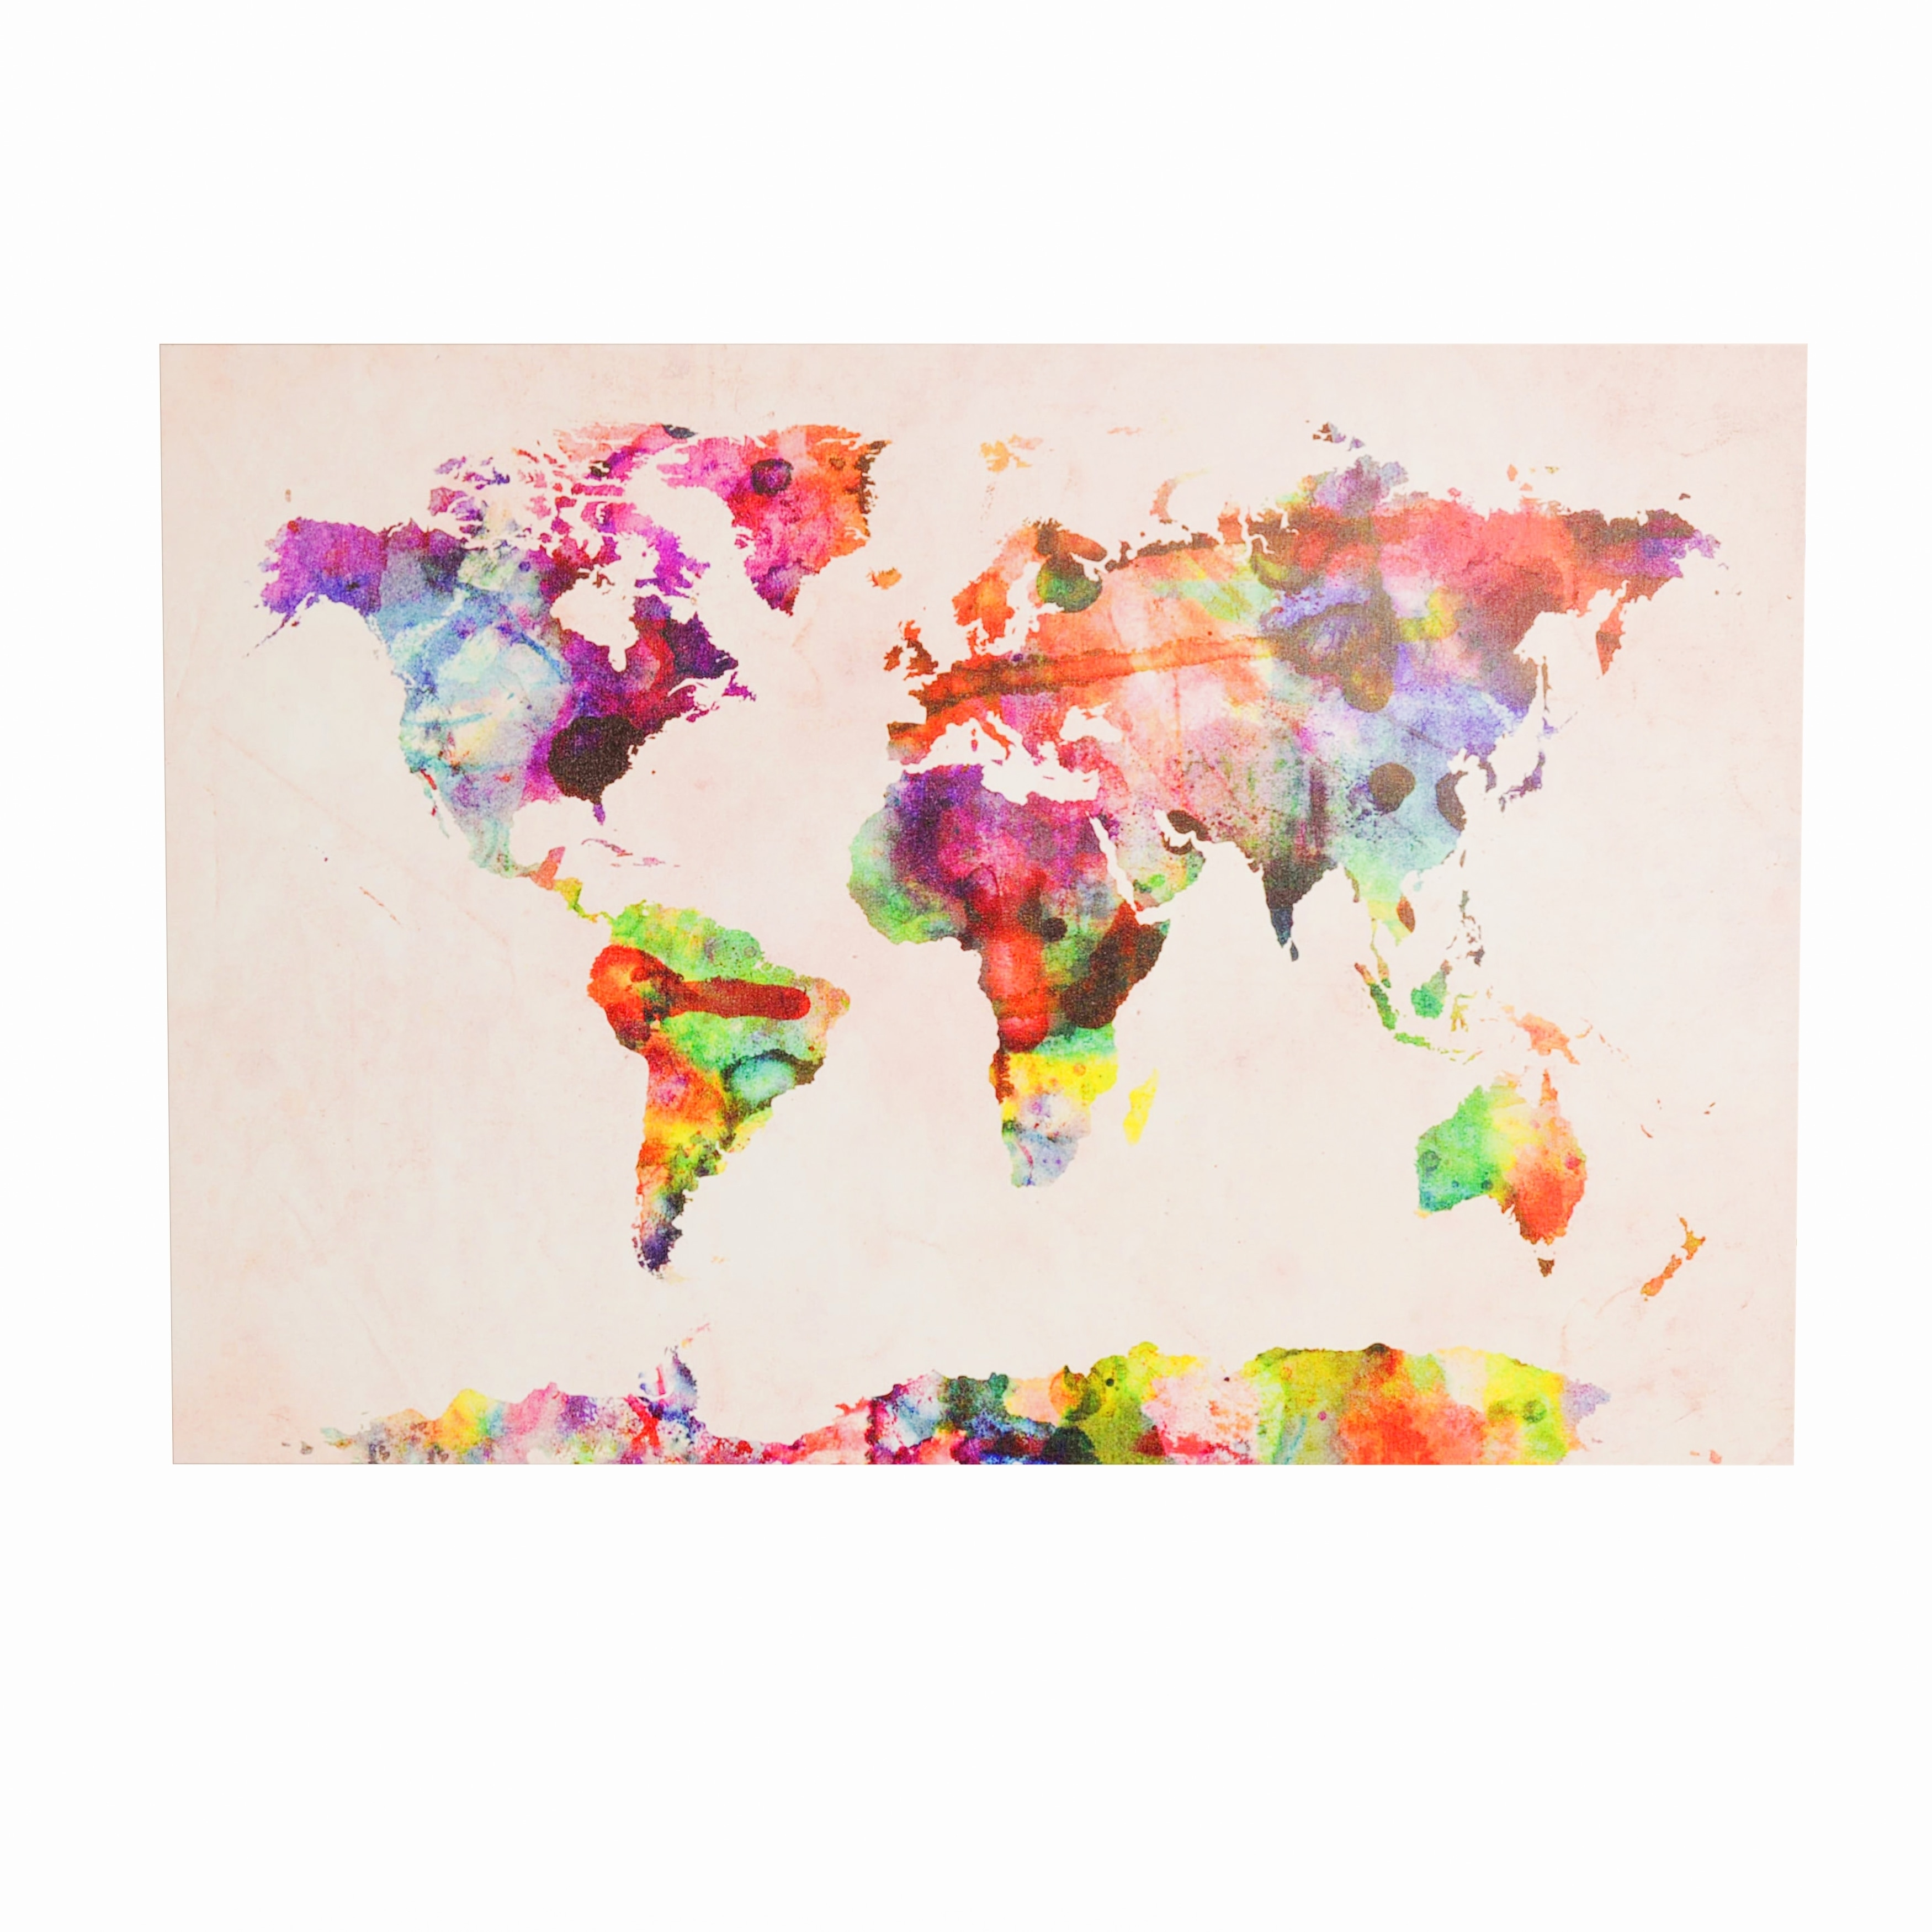 The Curated Nomad 'Urban Watercolor World Map' Canvas Art on map curtains, cool world map art, map of western united states, gold glass art, map drawing art, united states map art, map of eastern united states, map color art, map framed art, brown abstract art, map home decor, map modge podge art, map mediterranean, map design, diy map art, map art prints, map pencil art, map border art, map wall decals, map food art,